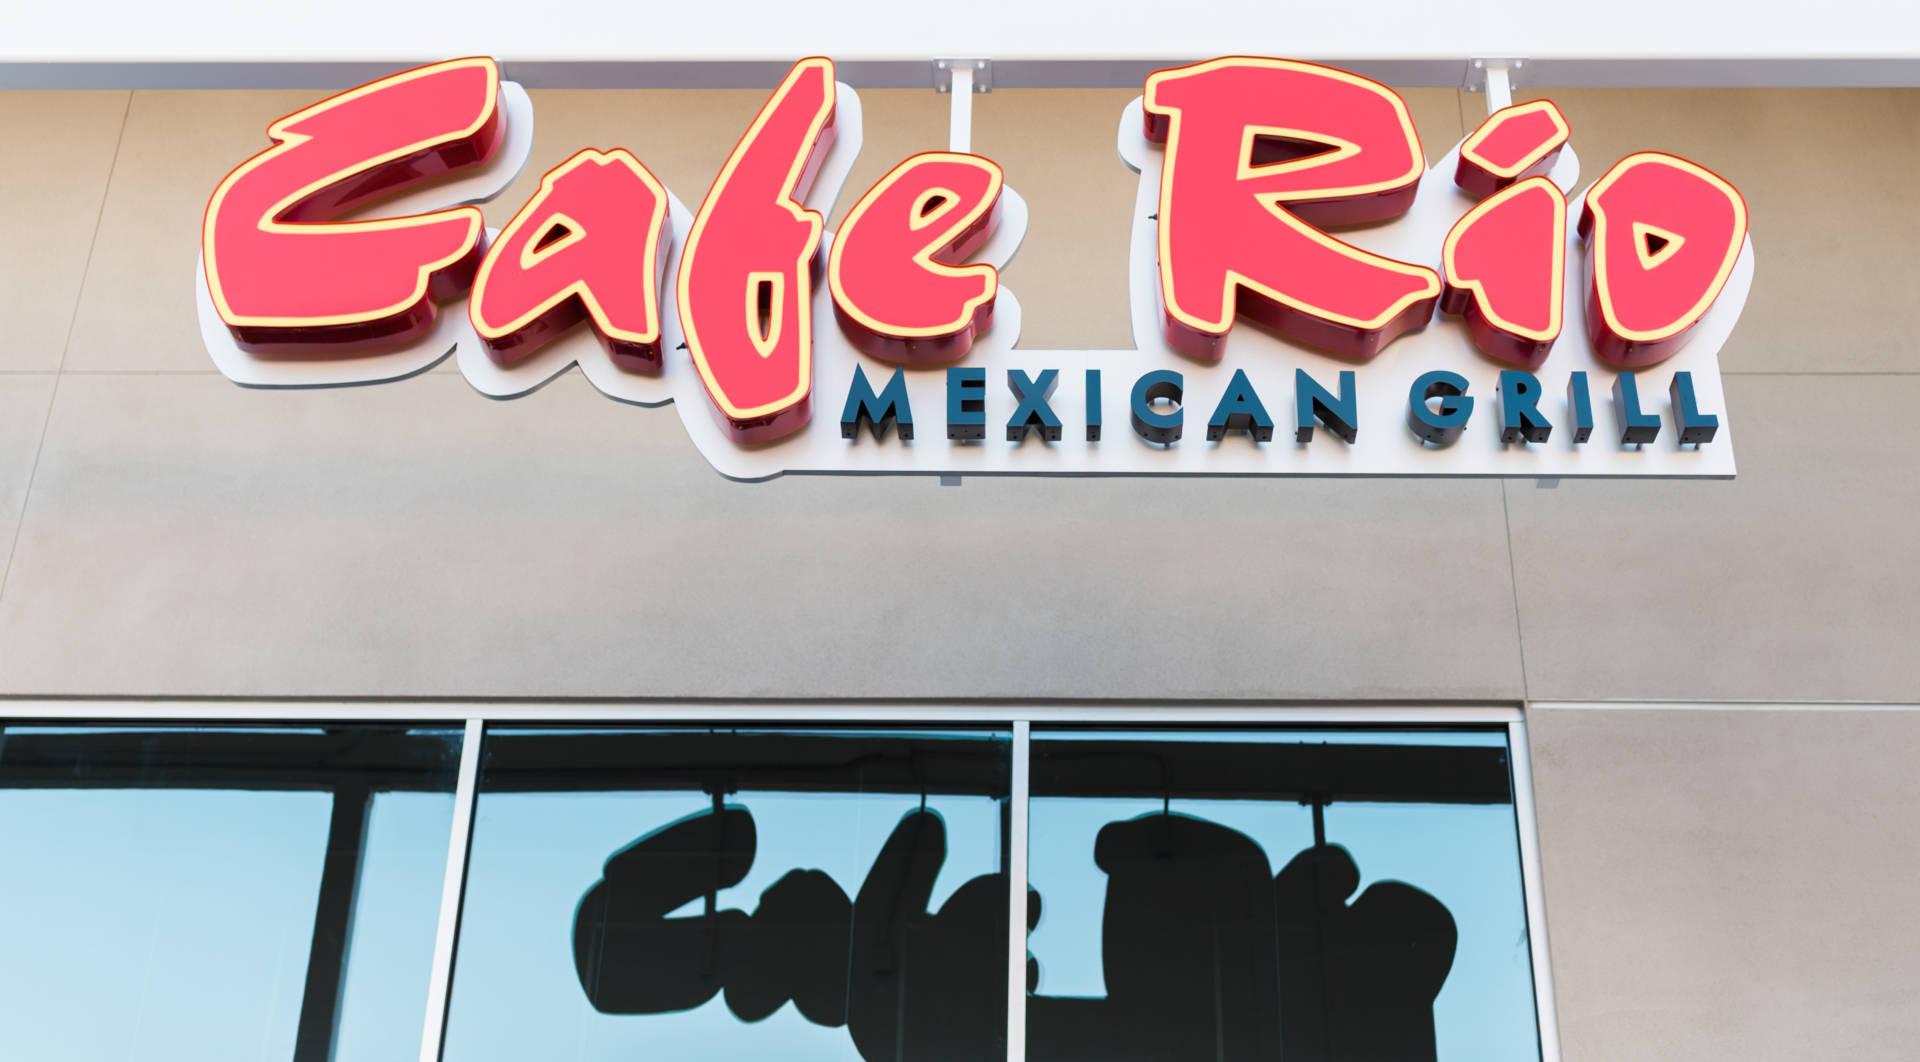 Cafe Rio: Acclaimed #1 Mexican Restaurant in the Nation. From the atmosphere to the deliciously tasteful food, this restaurant is a must try!